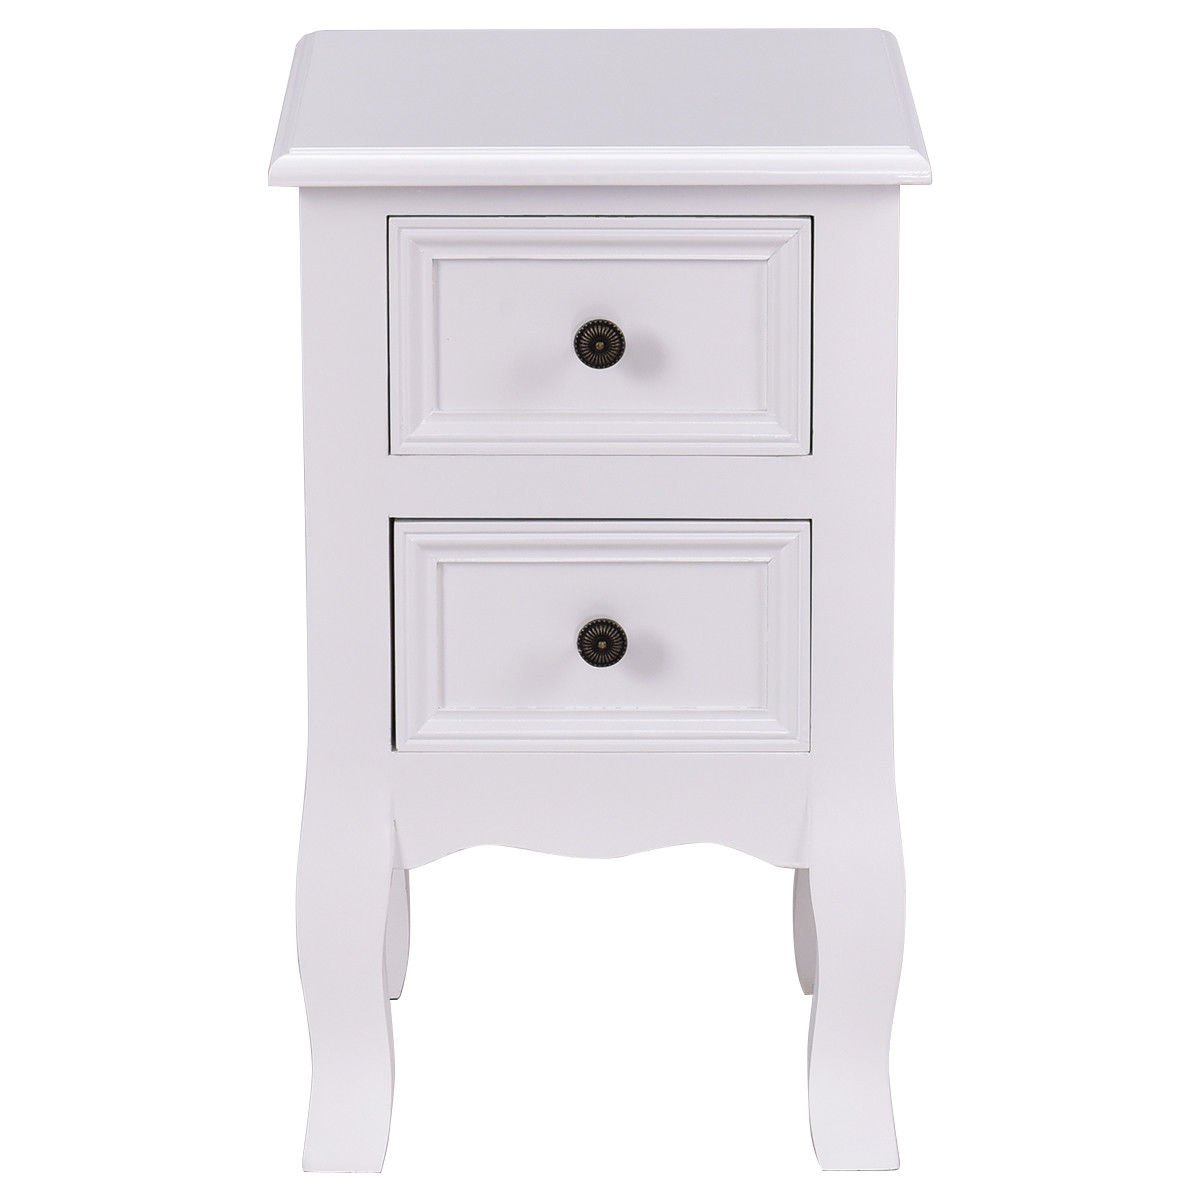 way white night stand storage drawers wood accent table with end kilim runner queen frame cordless lights nesting dining grey and lamp small patio furniture round cover hammered